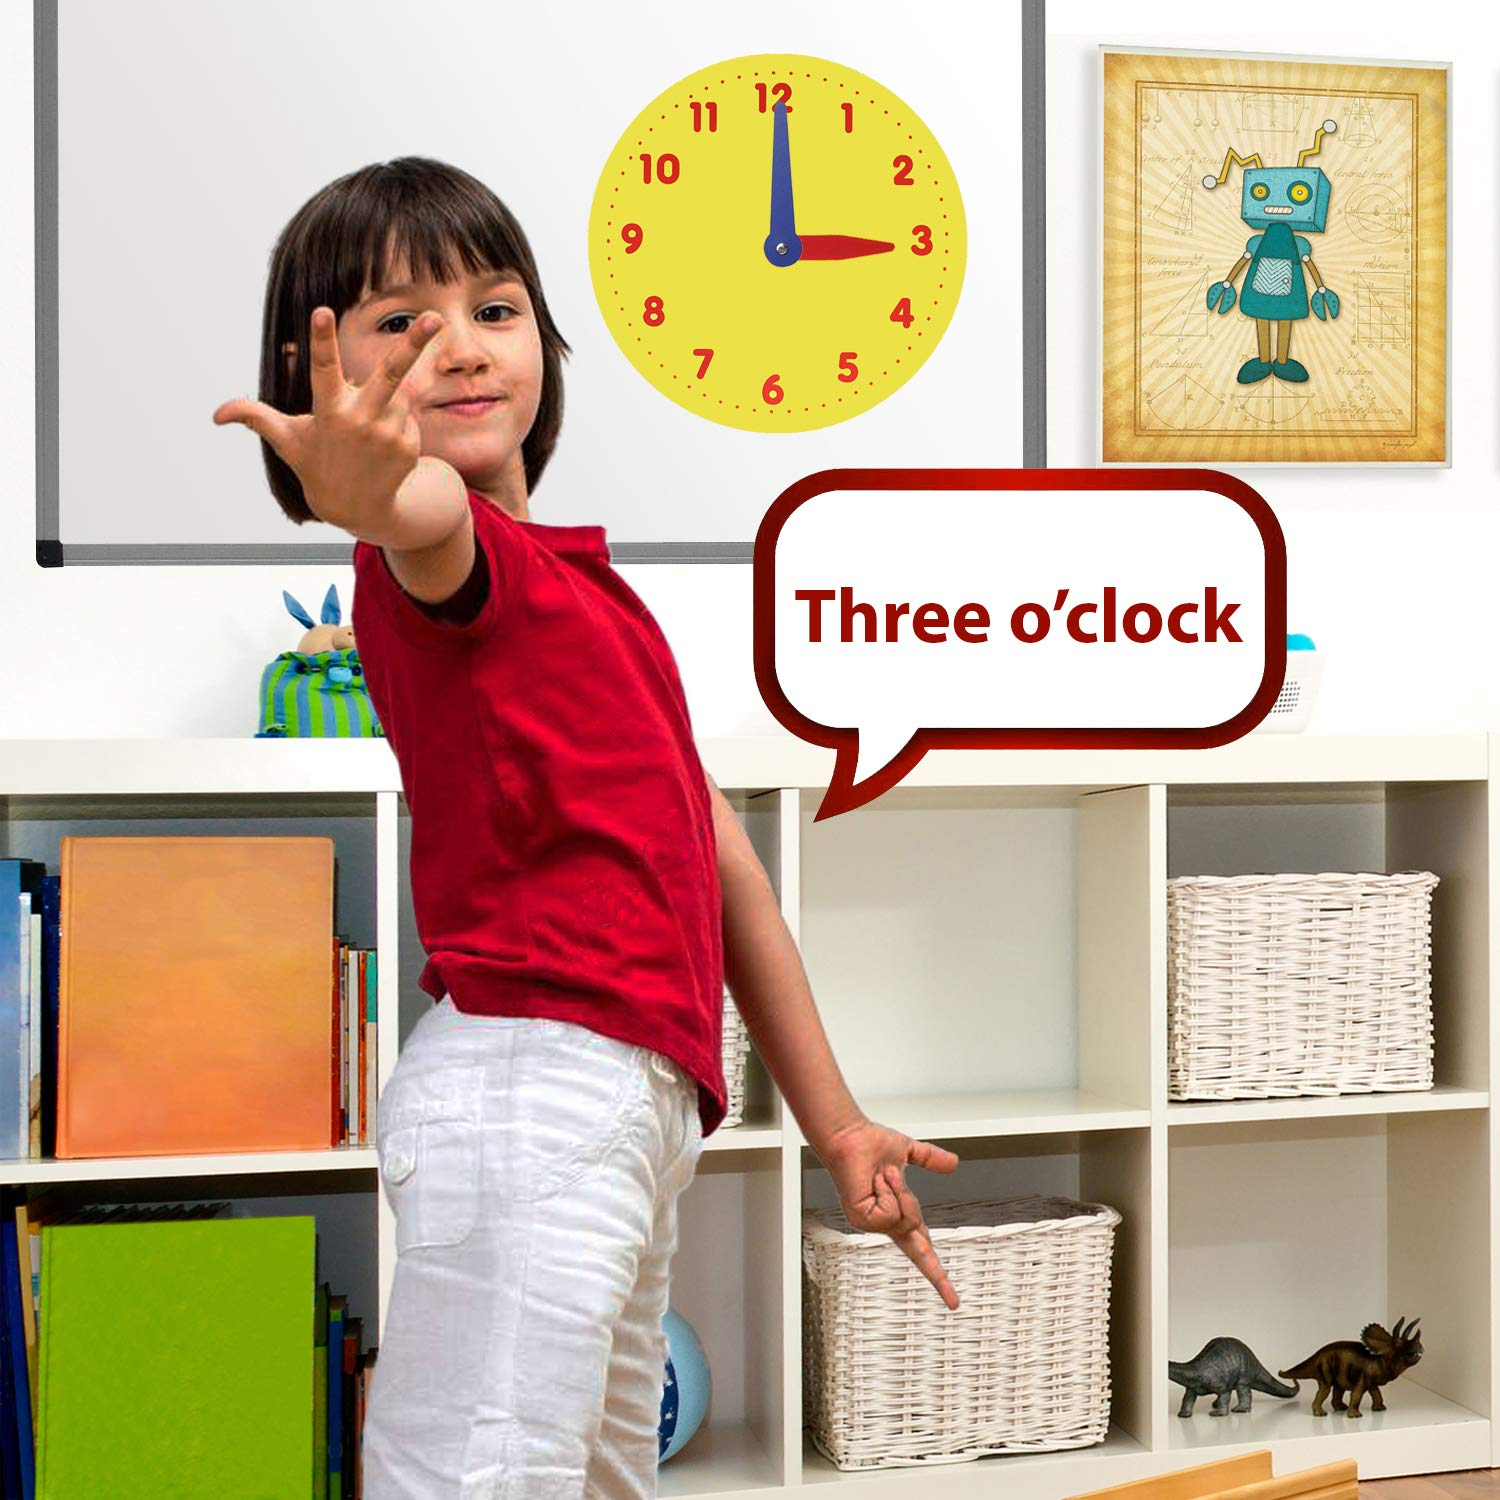 IQ Toys My First Learning Clock - Learn How to Tell Time, 12 inch Diameter Large Magnetic Educational Clock with Color Coded Hour and Minute Hands for Toddler Kids Girls and Boys